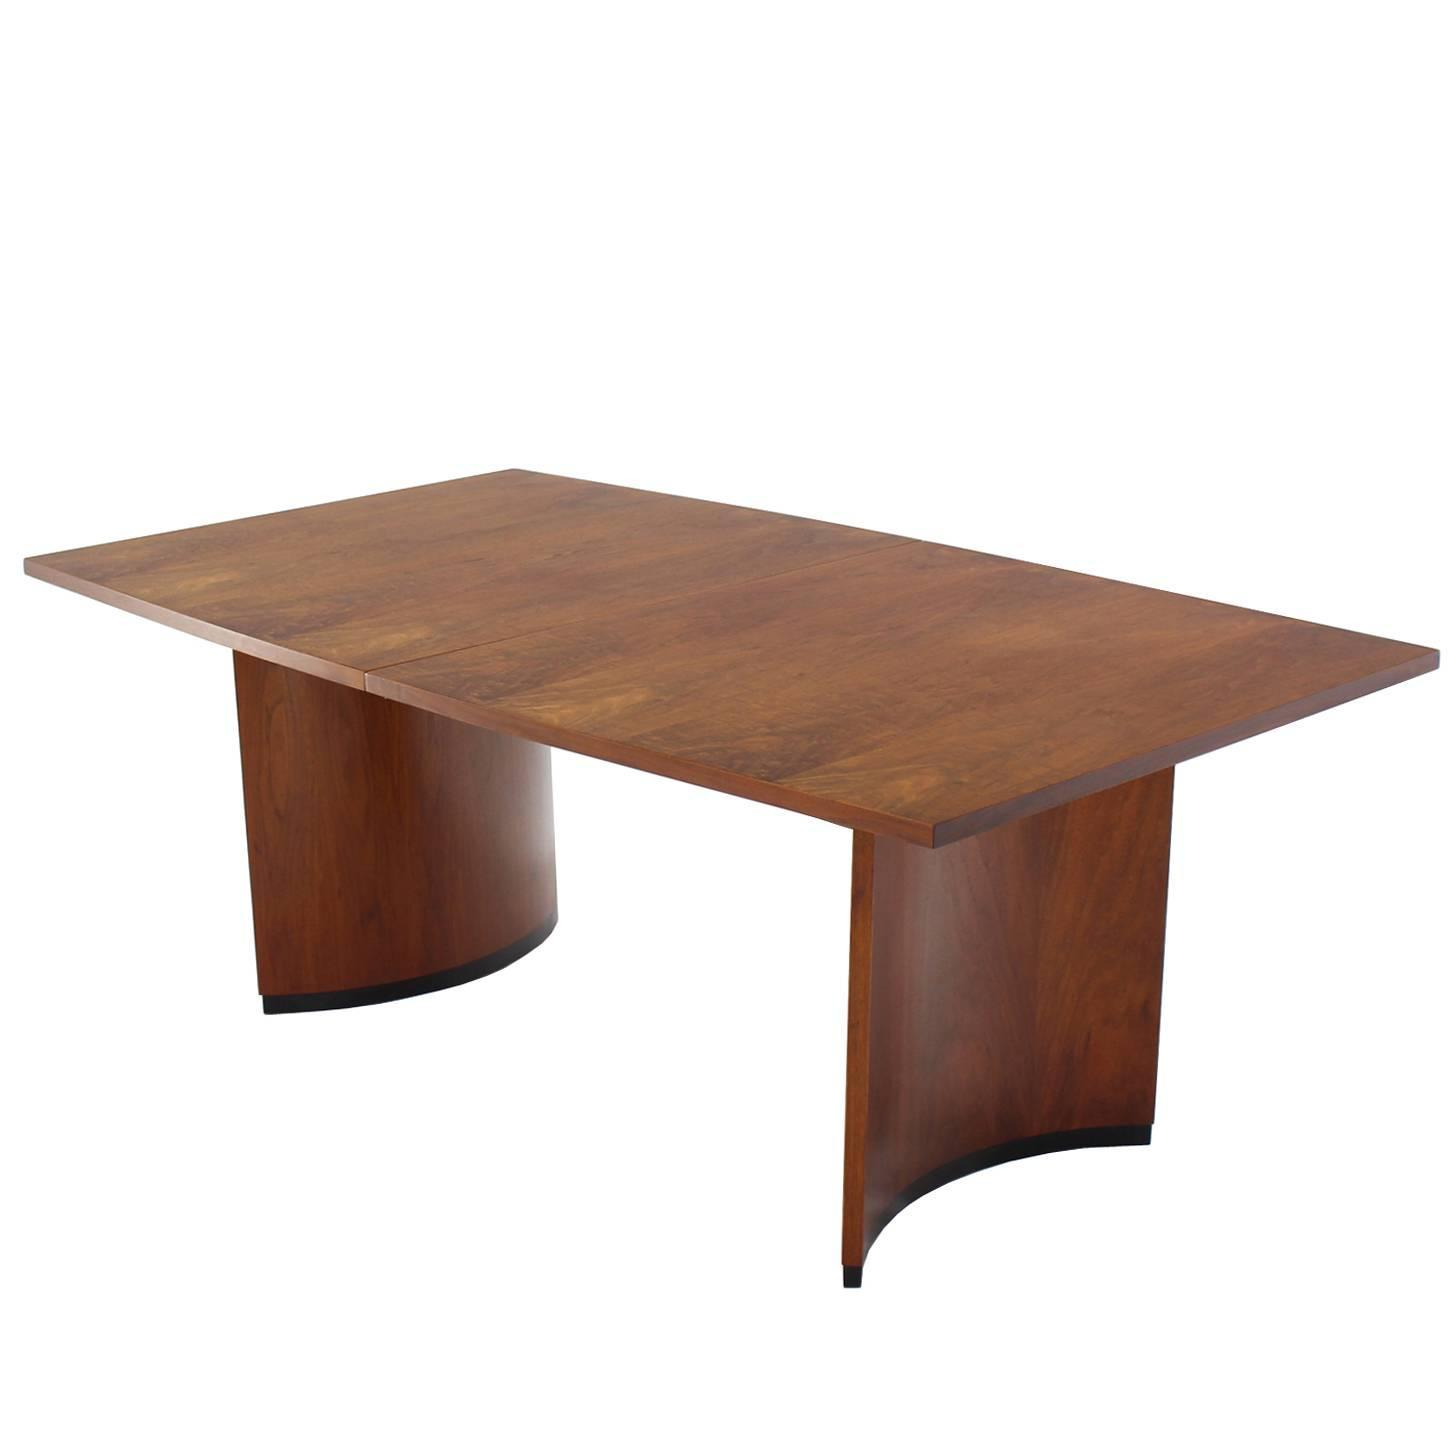 Very Nice Mid Century Modern Walnut Dining Table With Two